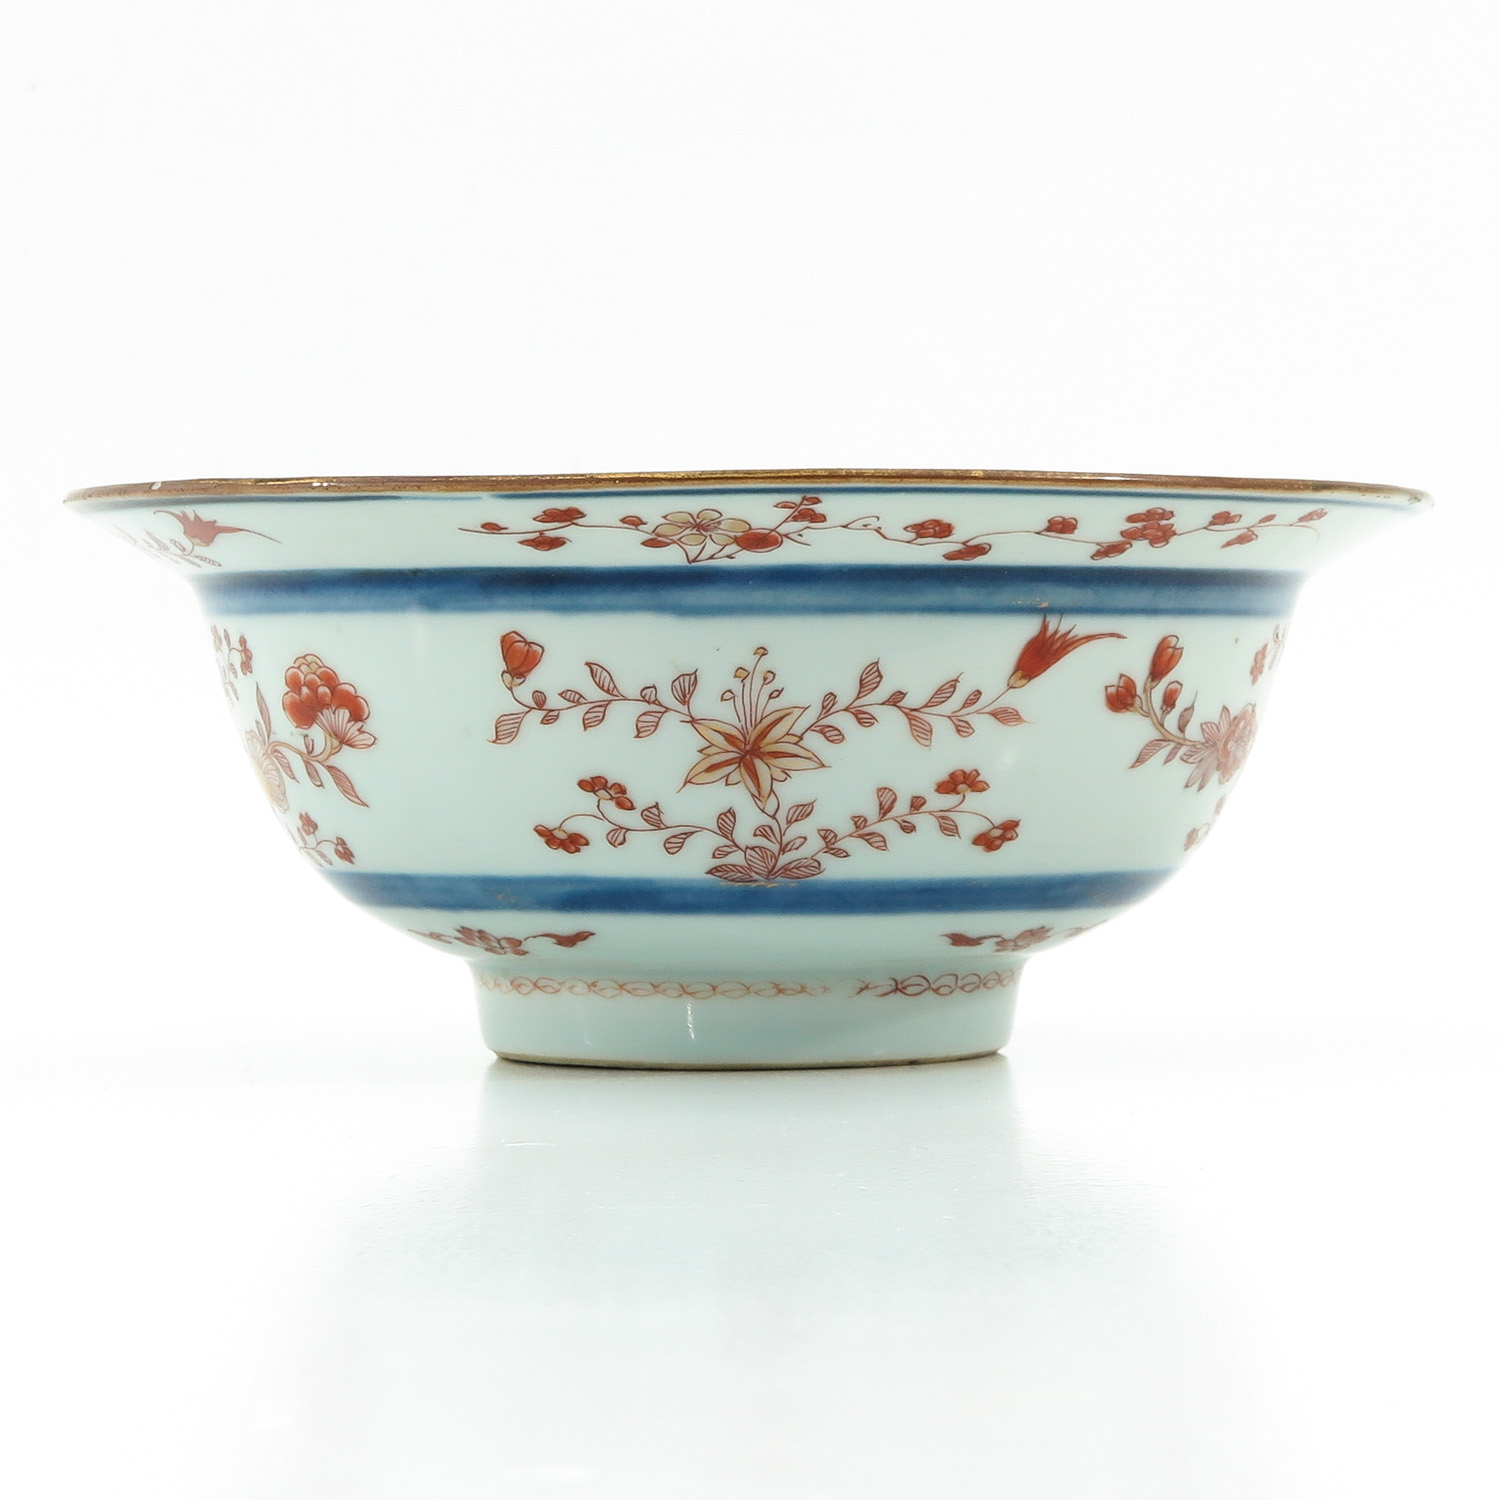 A Blue and Iron Red Bowl - Image 2 of 9